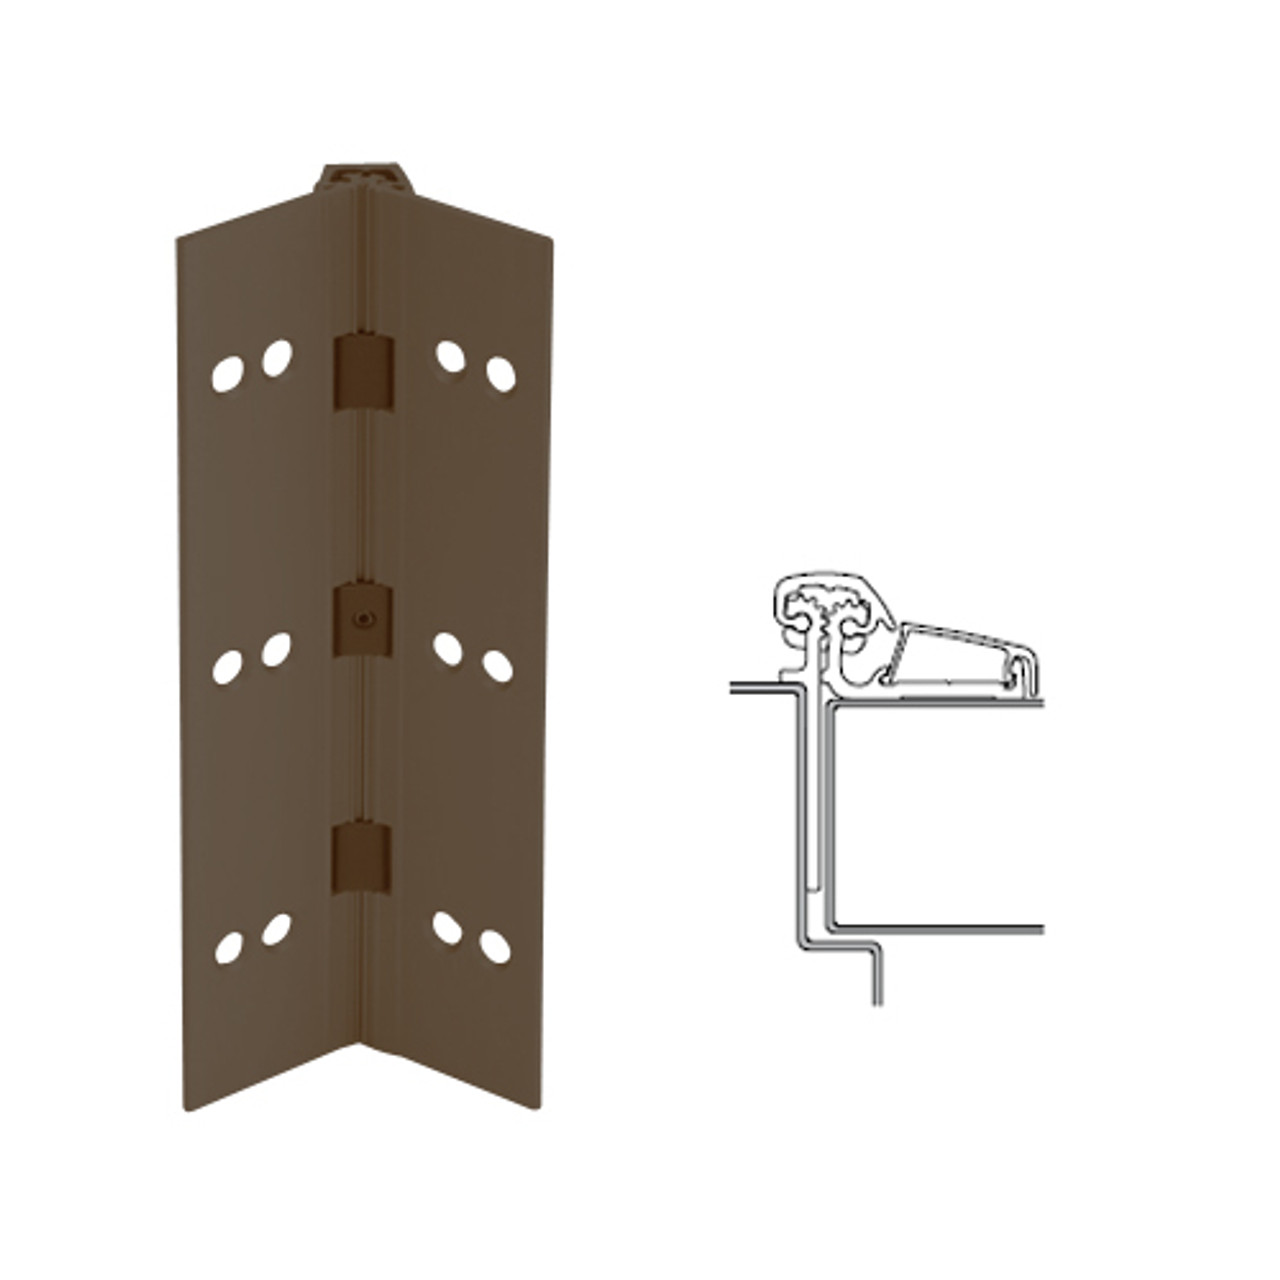 053XY-313AN-85-TF IVES Adjustable Half Surface Continuous Geared Hinges with Thread Forming Screws in Dark Bronze Anodized